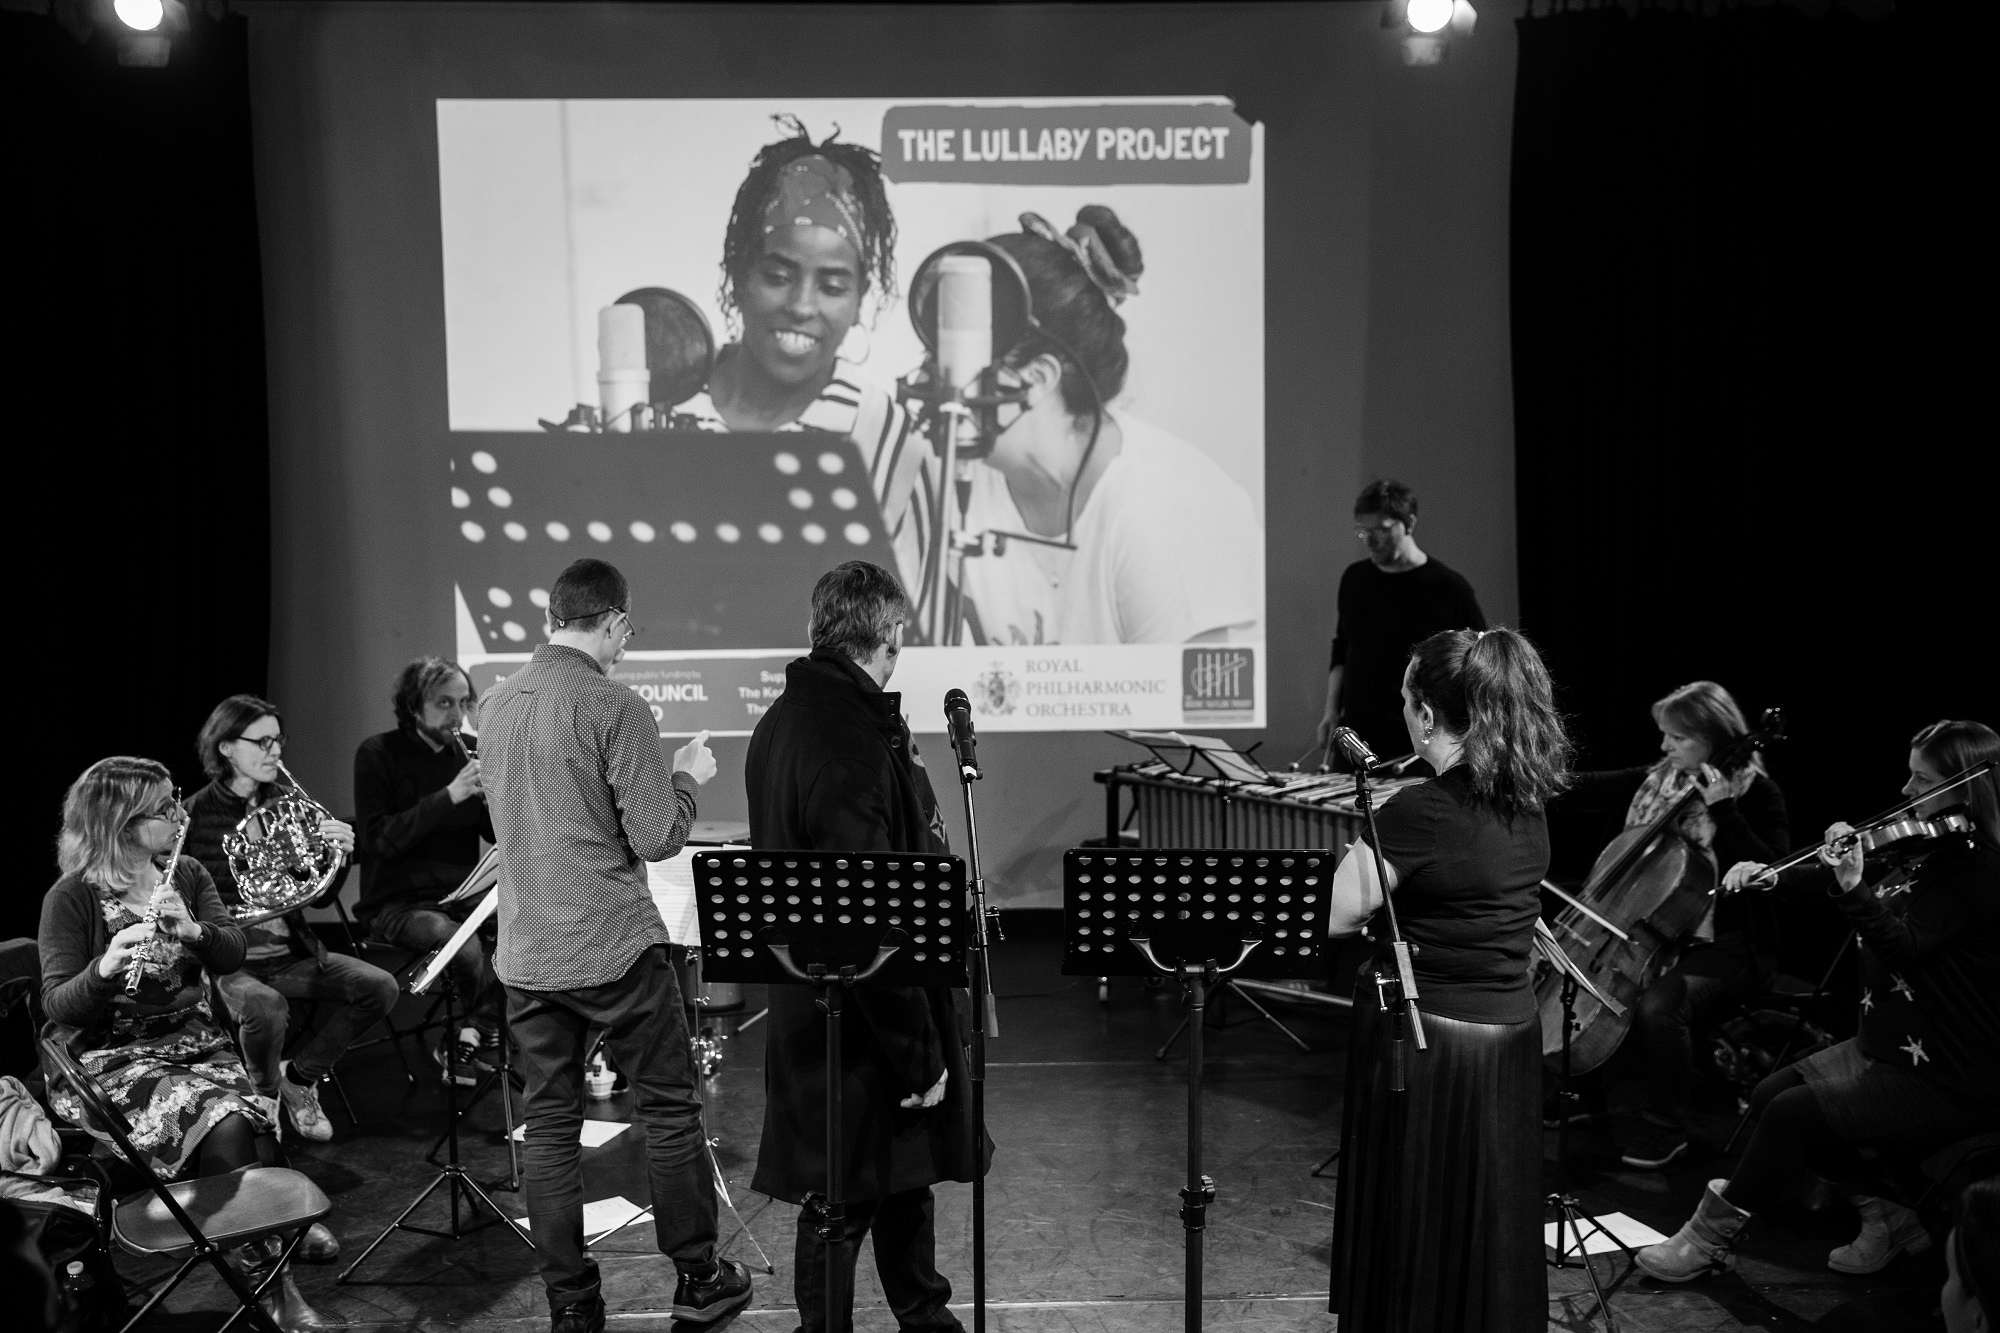 6 Lullaby Project photo by TraceyAnderson